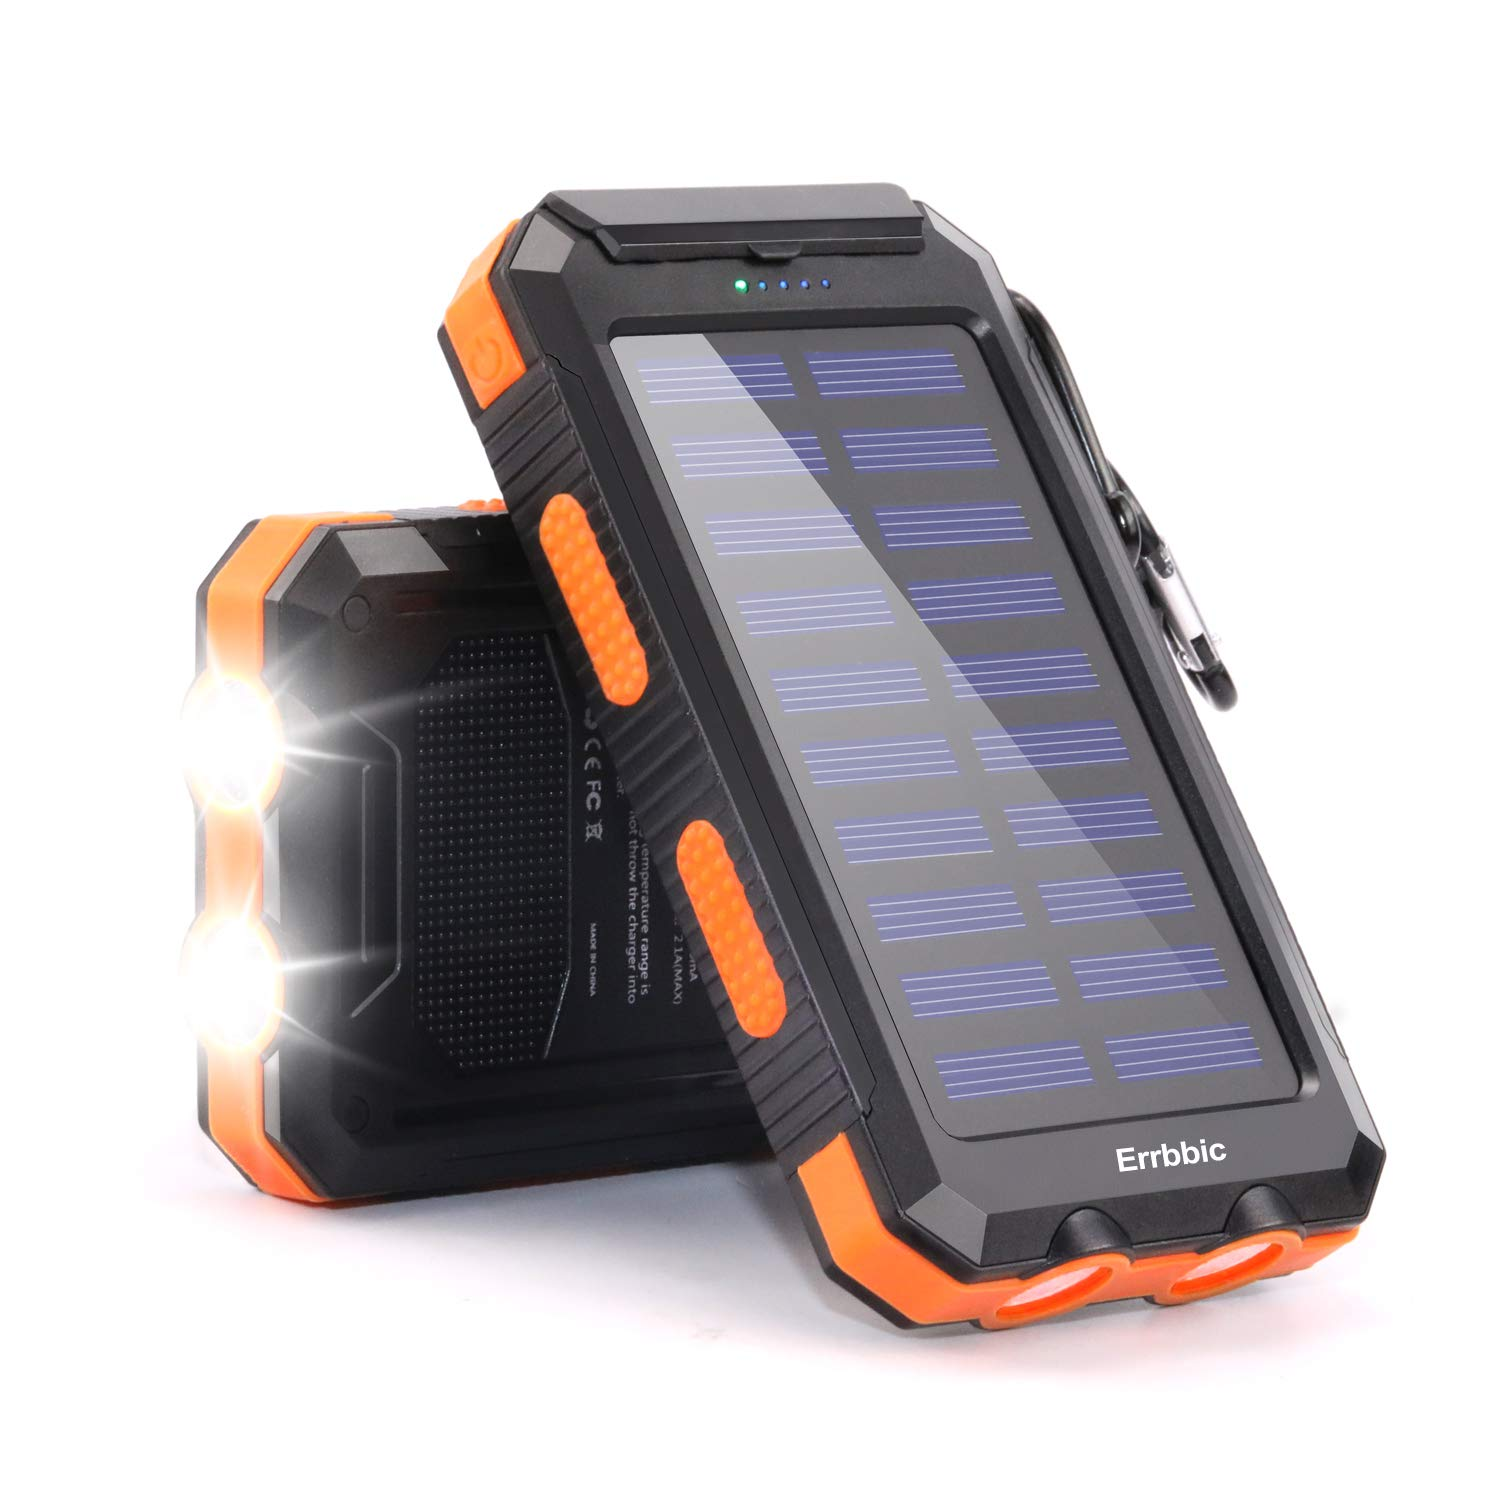 best service 8d8b1 d06a3 20000mAh Solar Power Bank Solar Charger Waterproof Portable Battery Charger  with Compass for iPad iPhone Android Cellphones (Black & Orange)